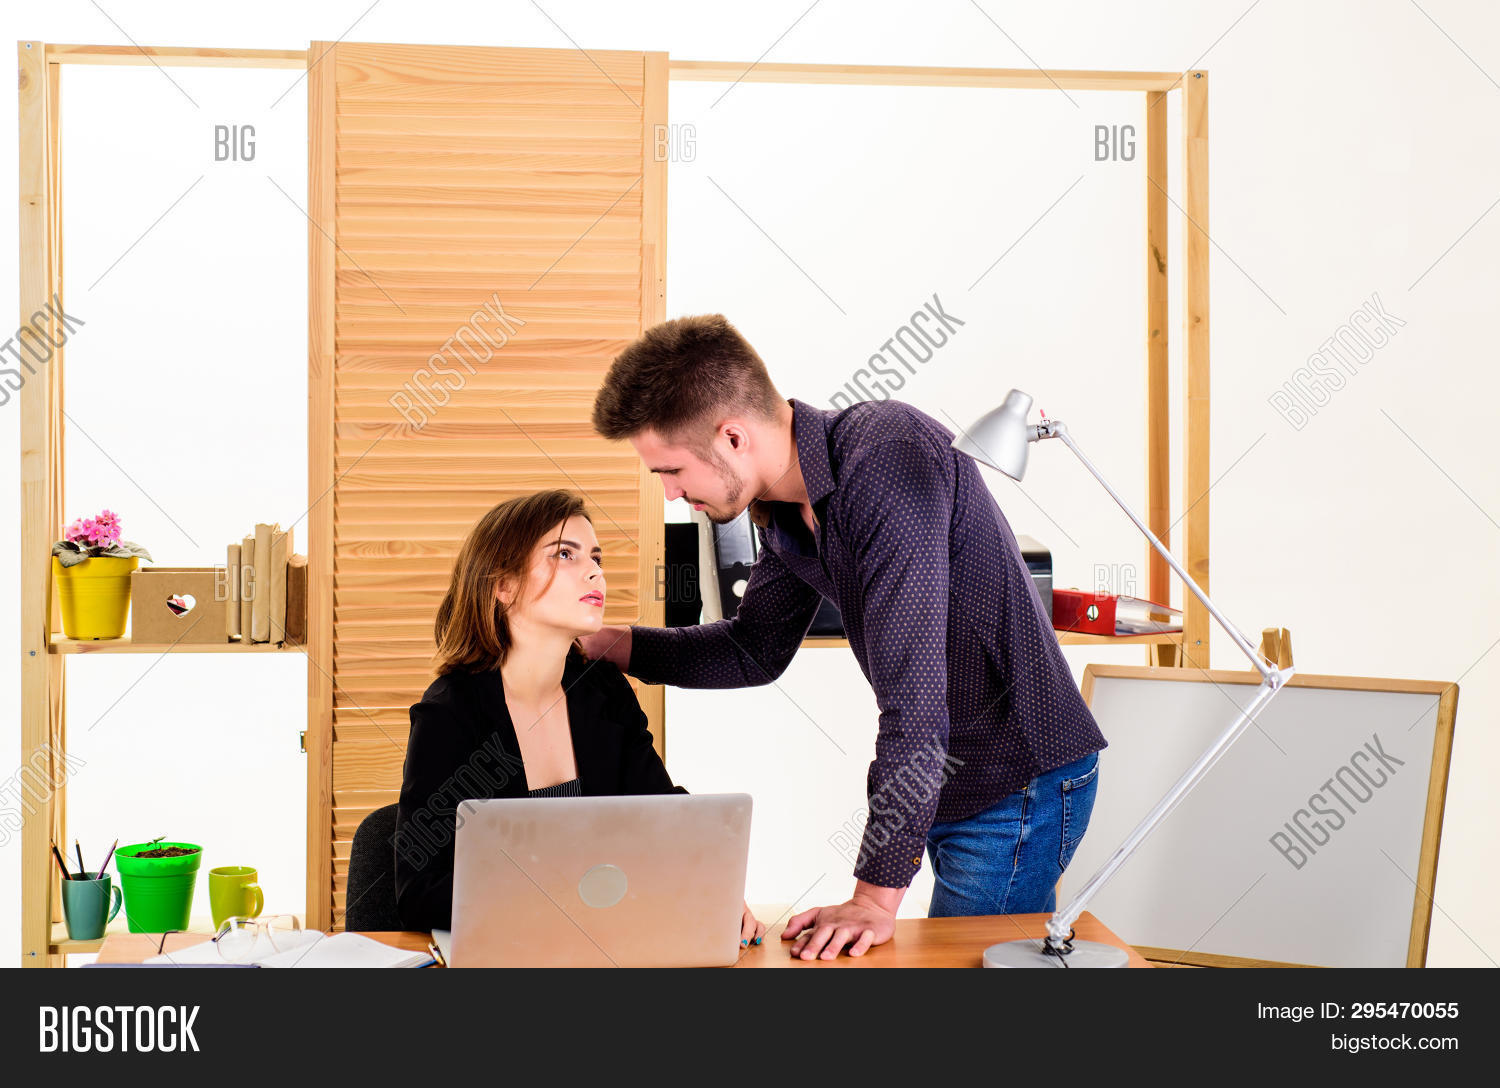 Falling In Love In Office. Workplace Romance Of Handsome Man And Sexy Woman In Office. Couple In Lov